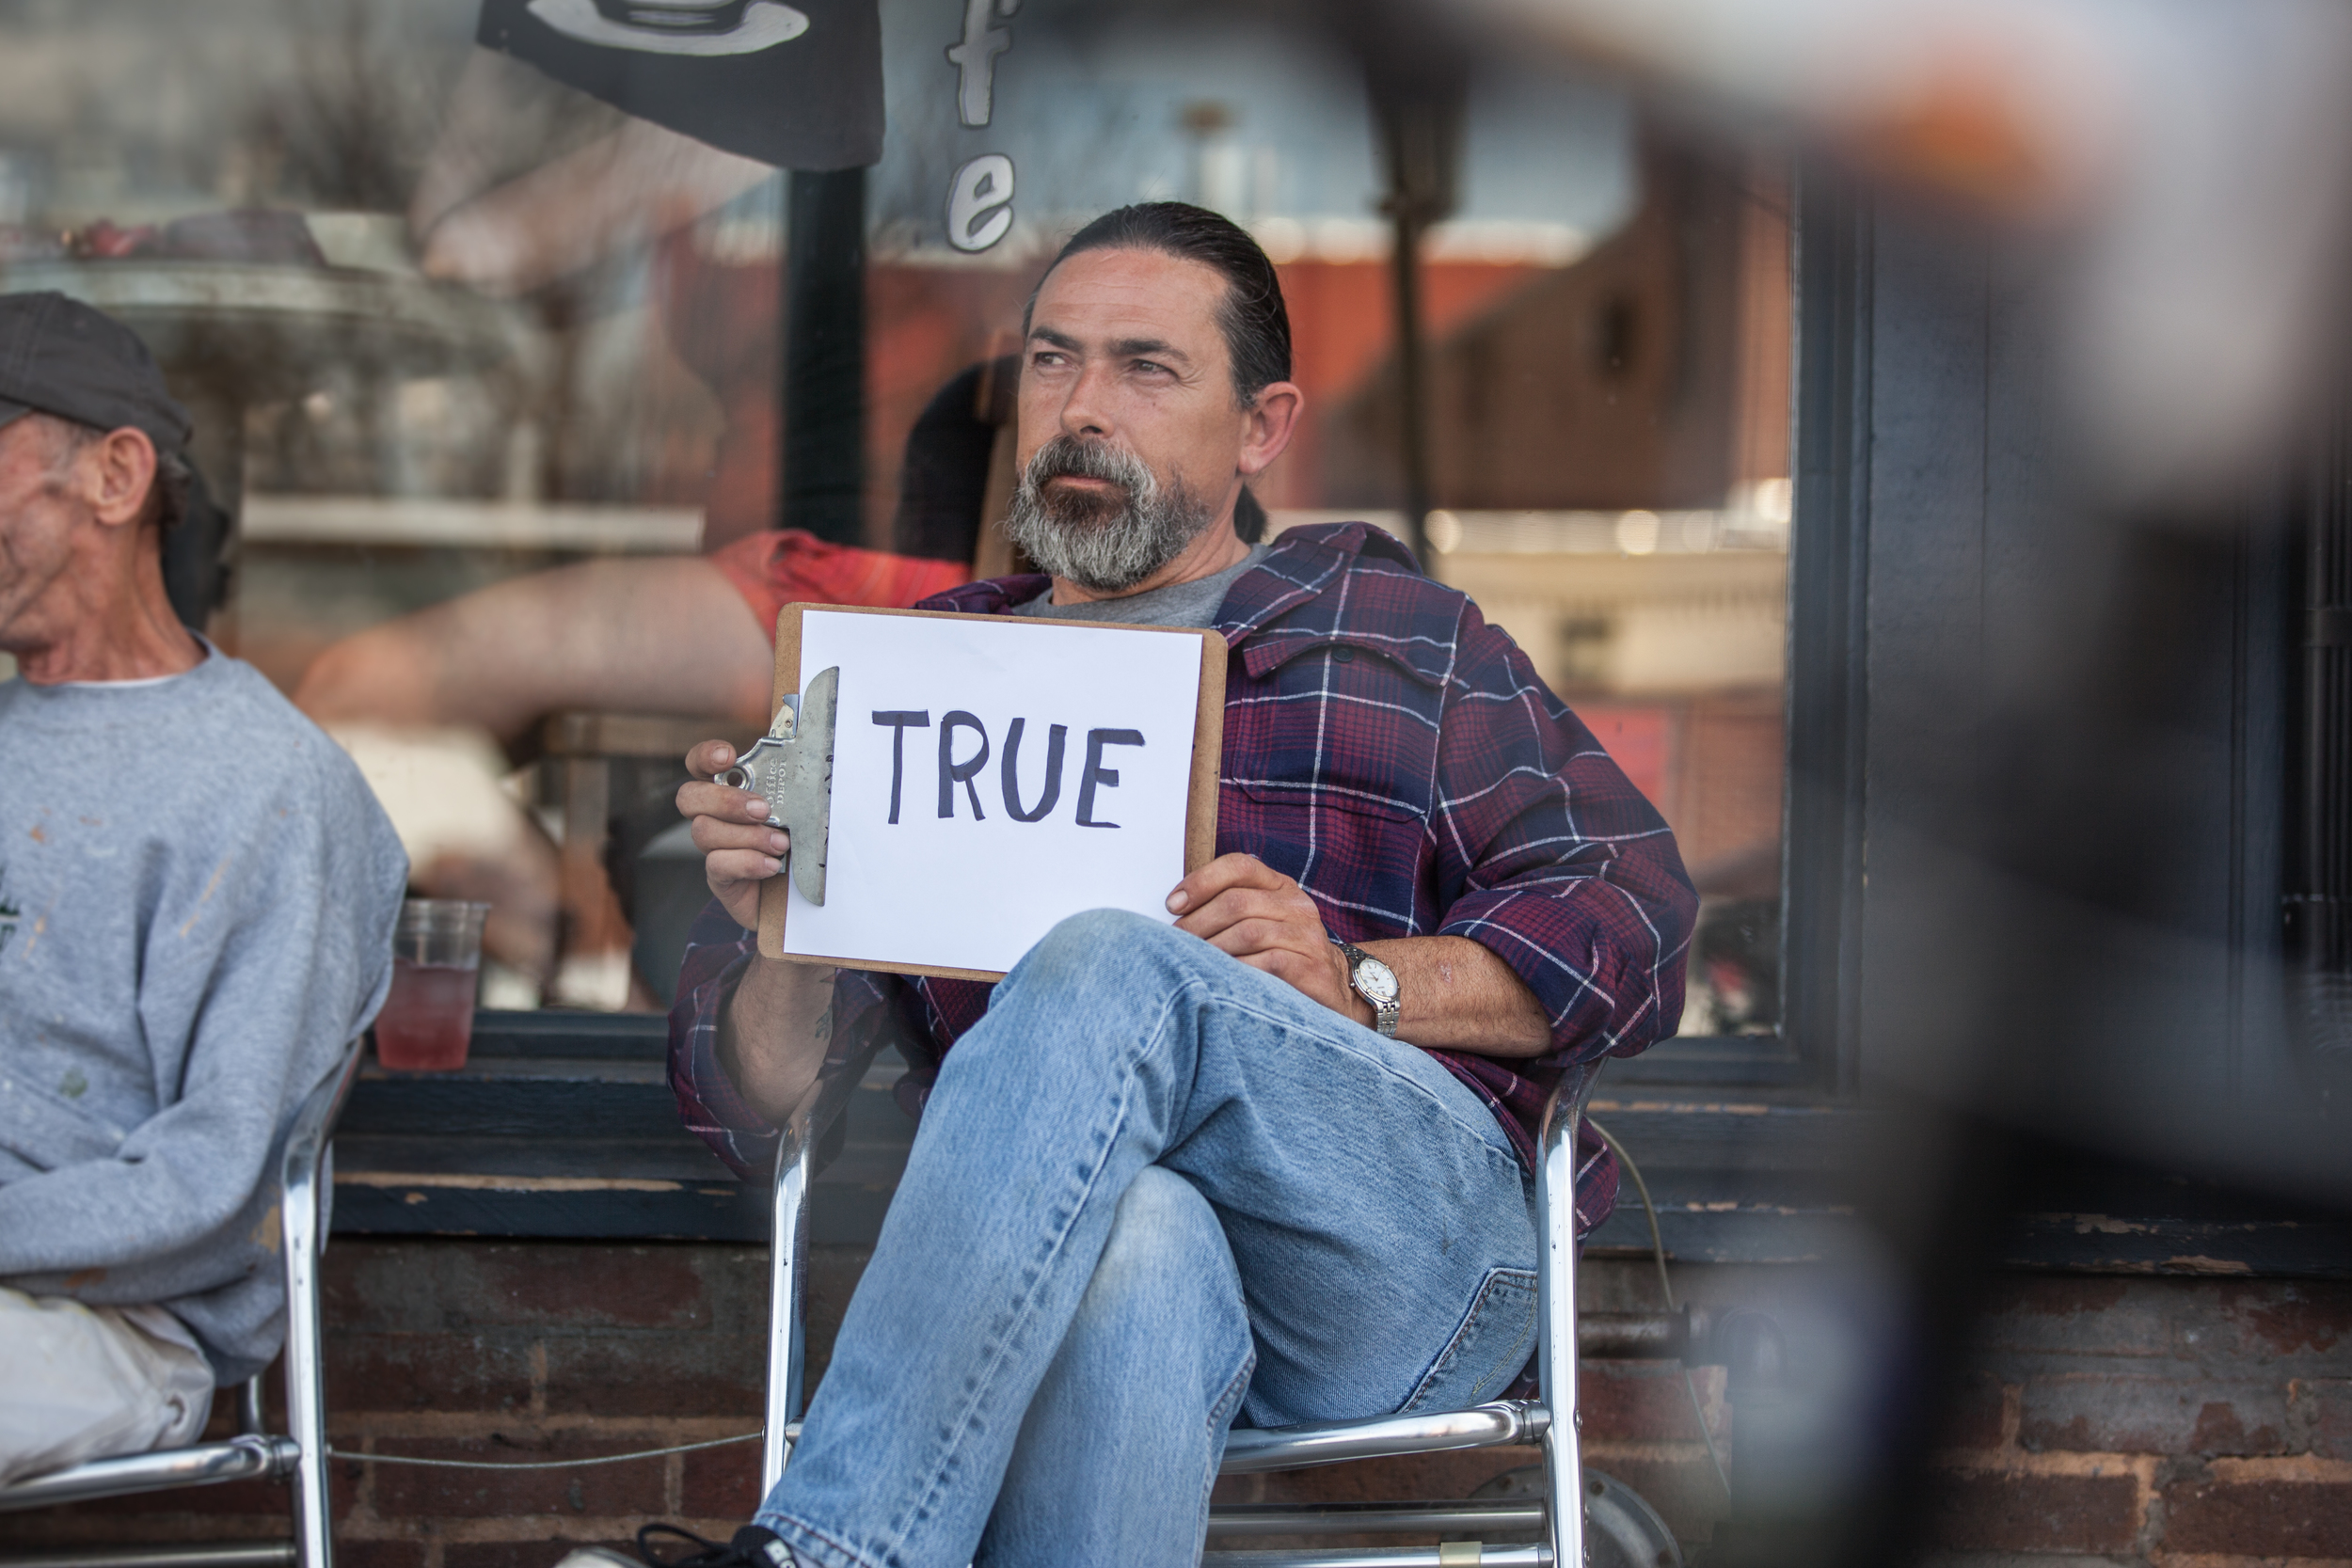 Man holding a sign that says true while sitting in a chair.